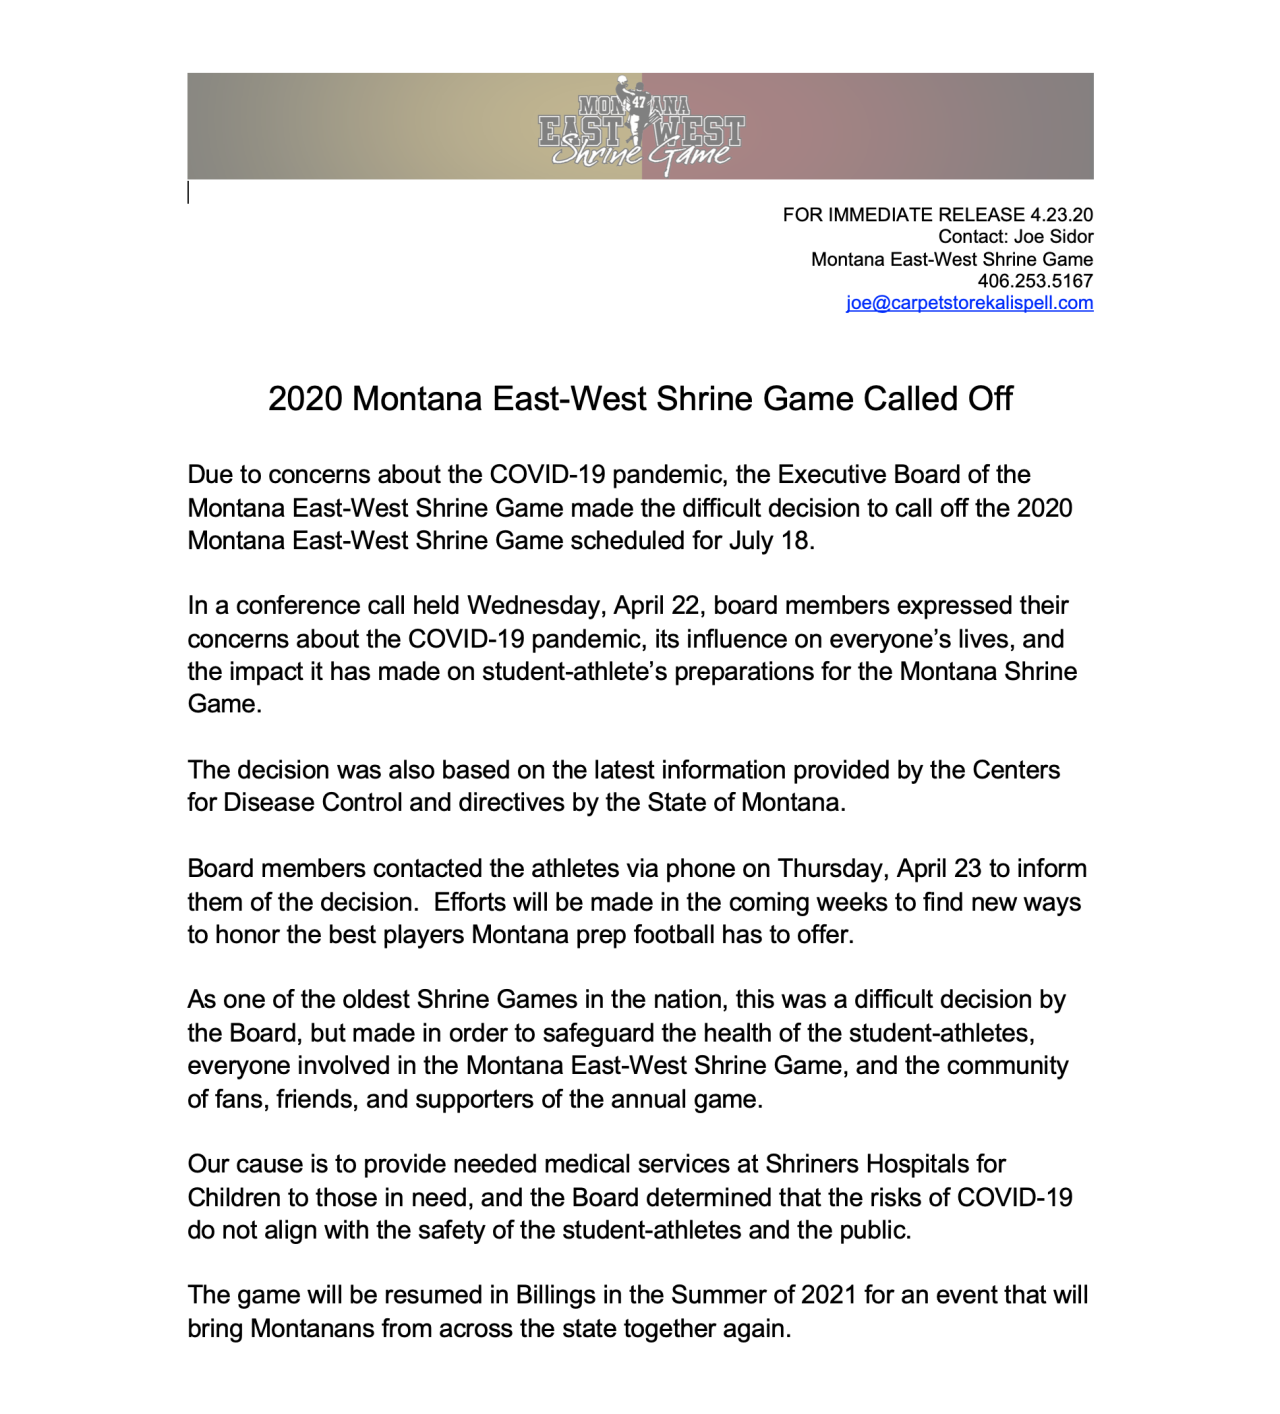 2020 Montana East-West Shrine Game press release